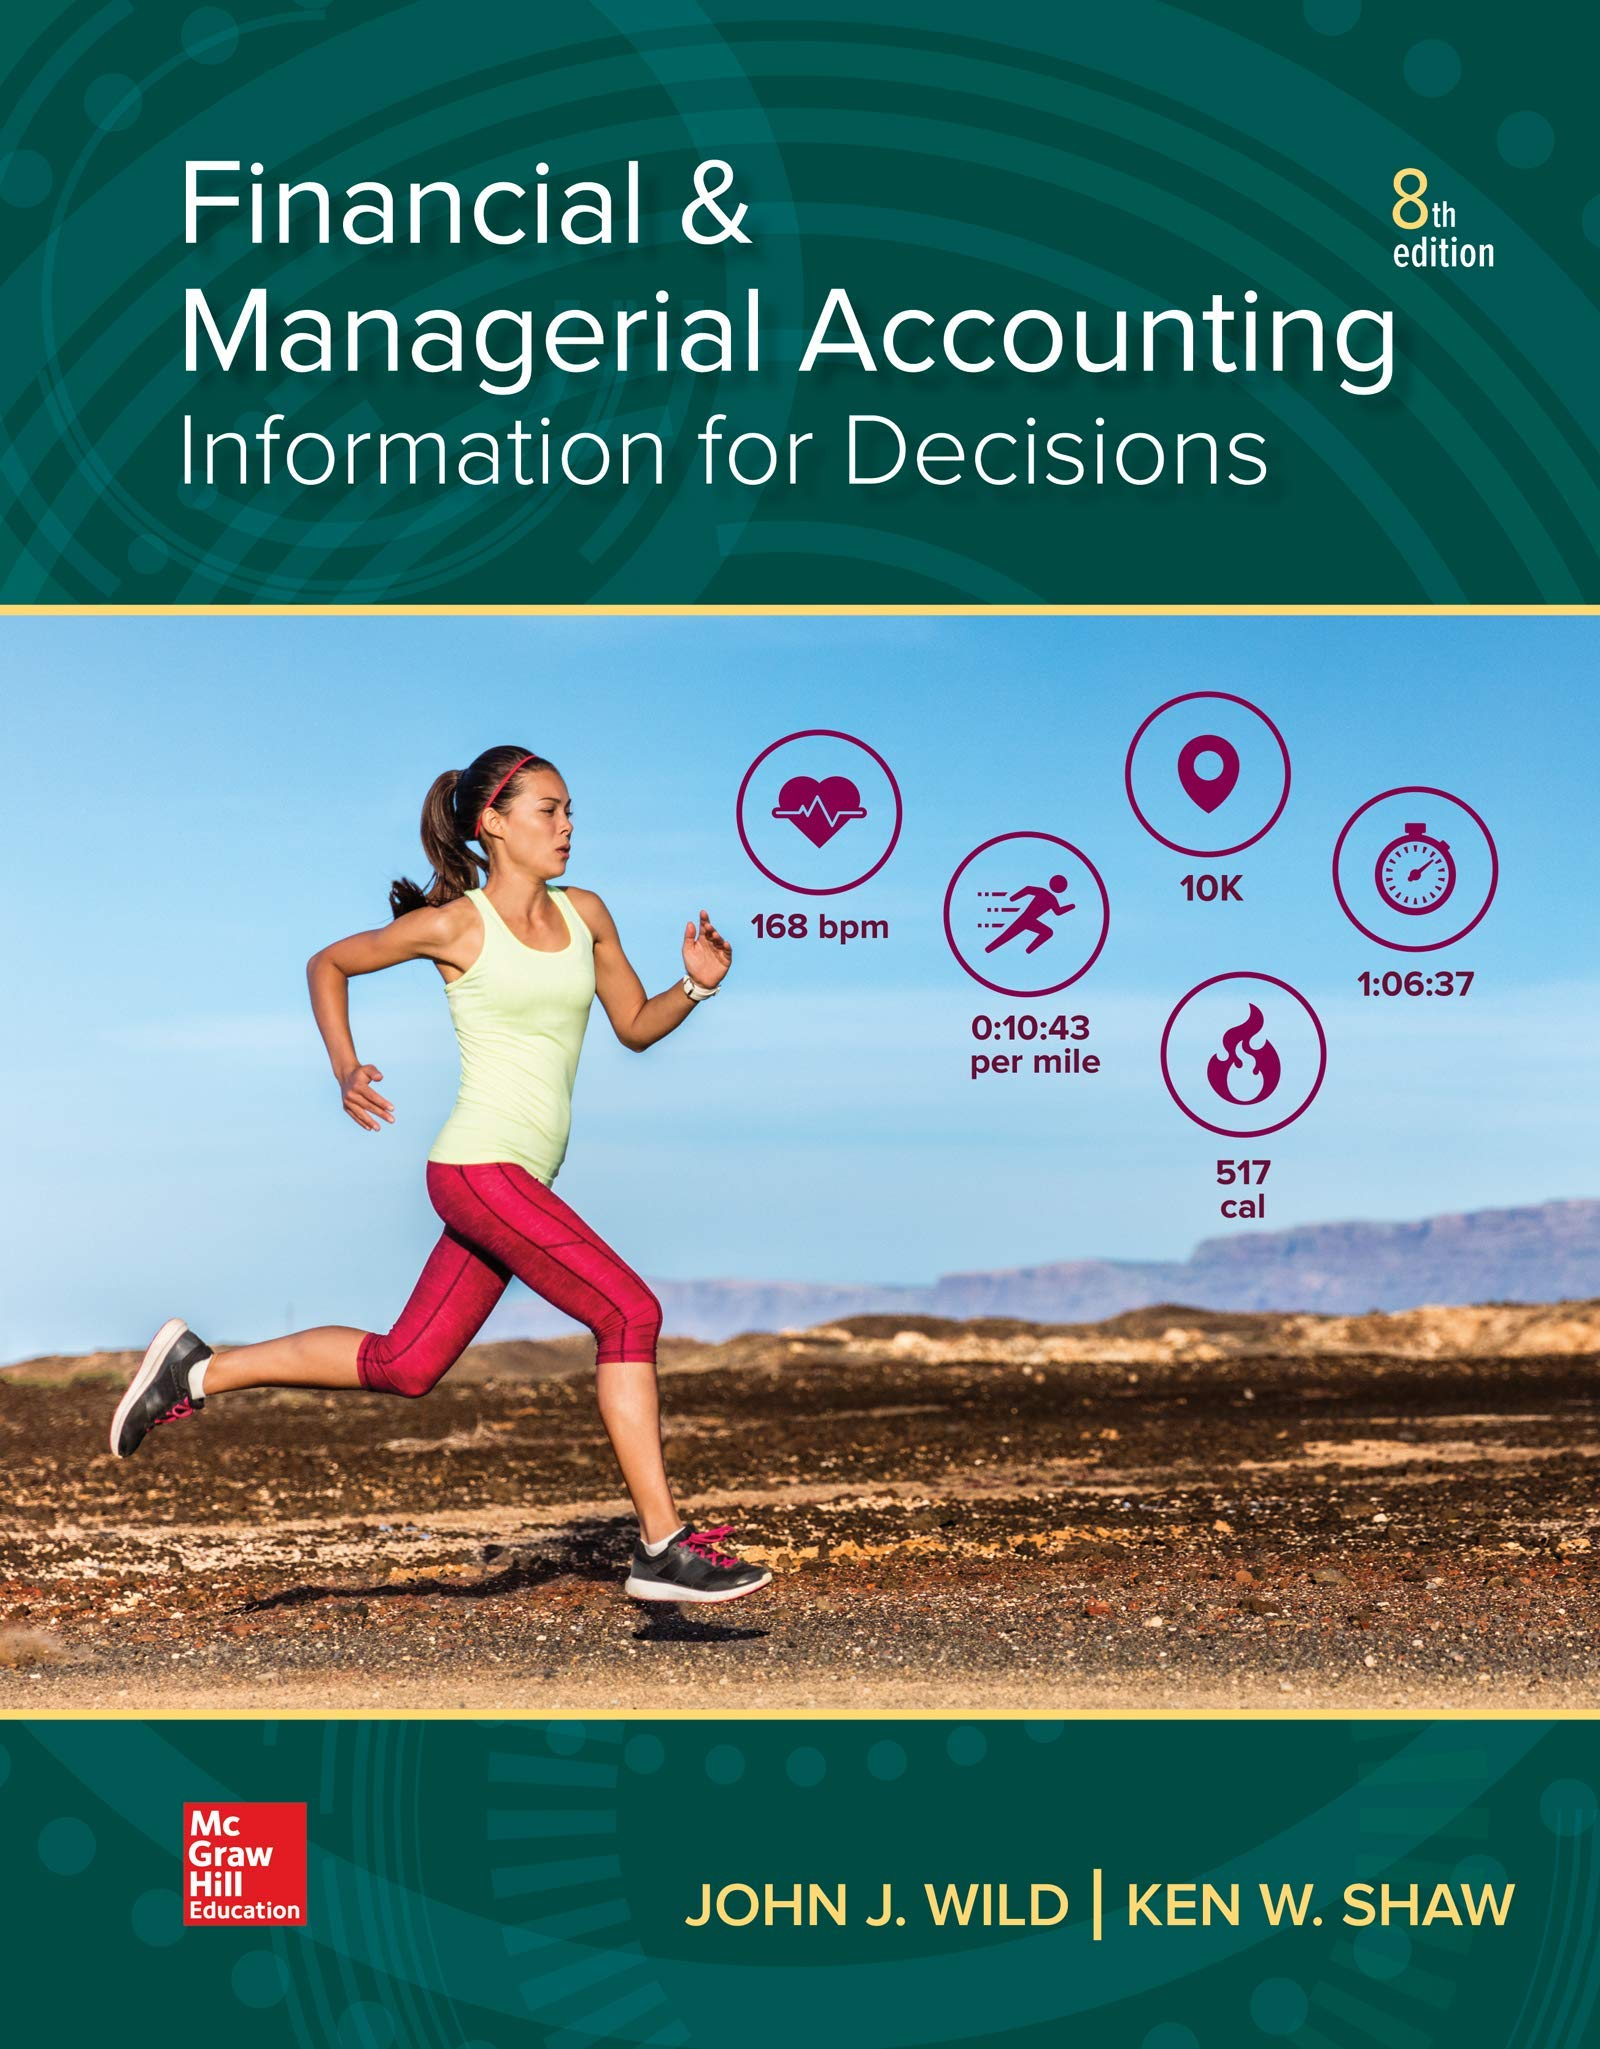 Financial and Managerial Accounting by McGraw-Hill Education